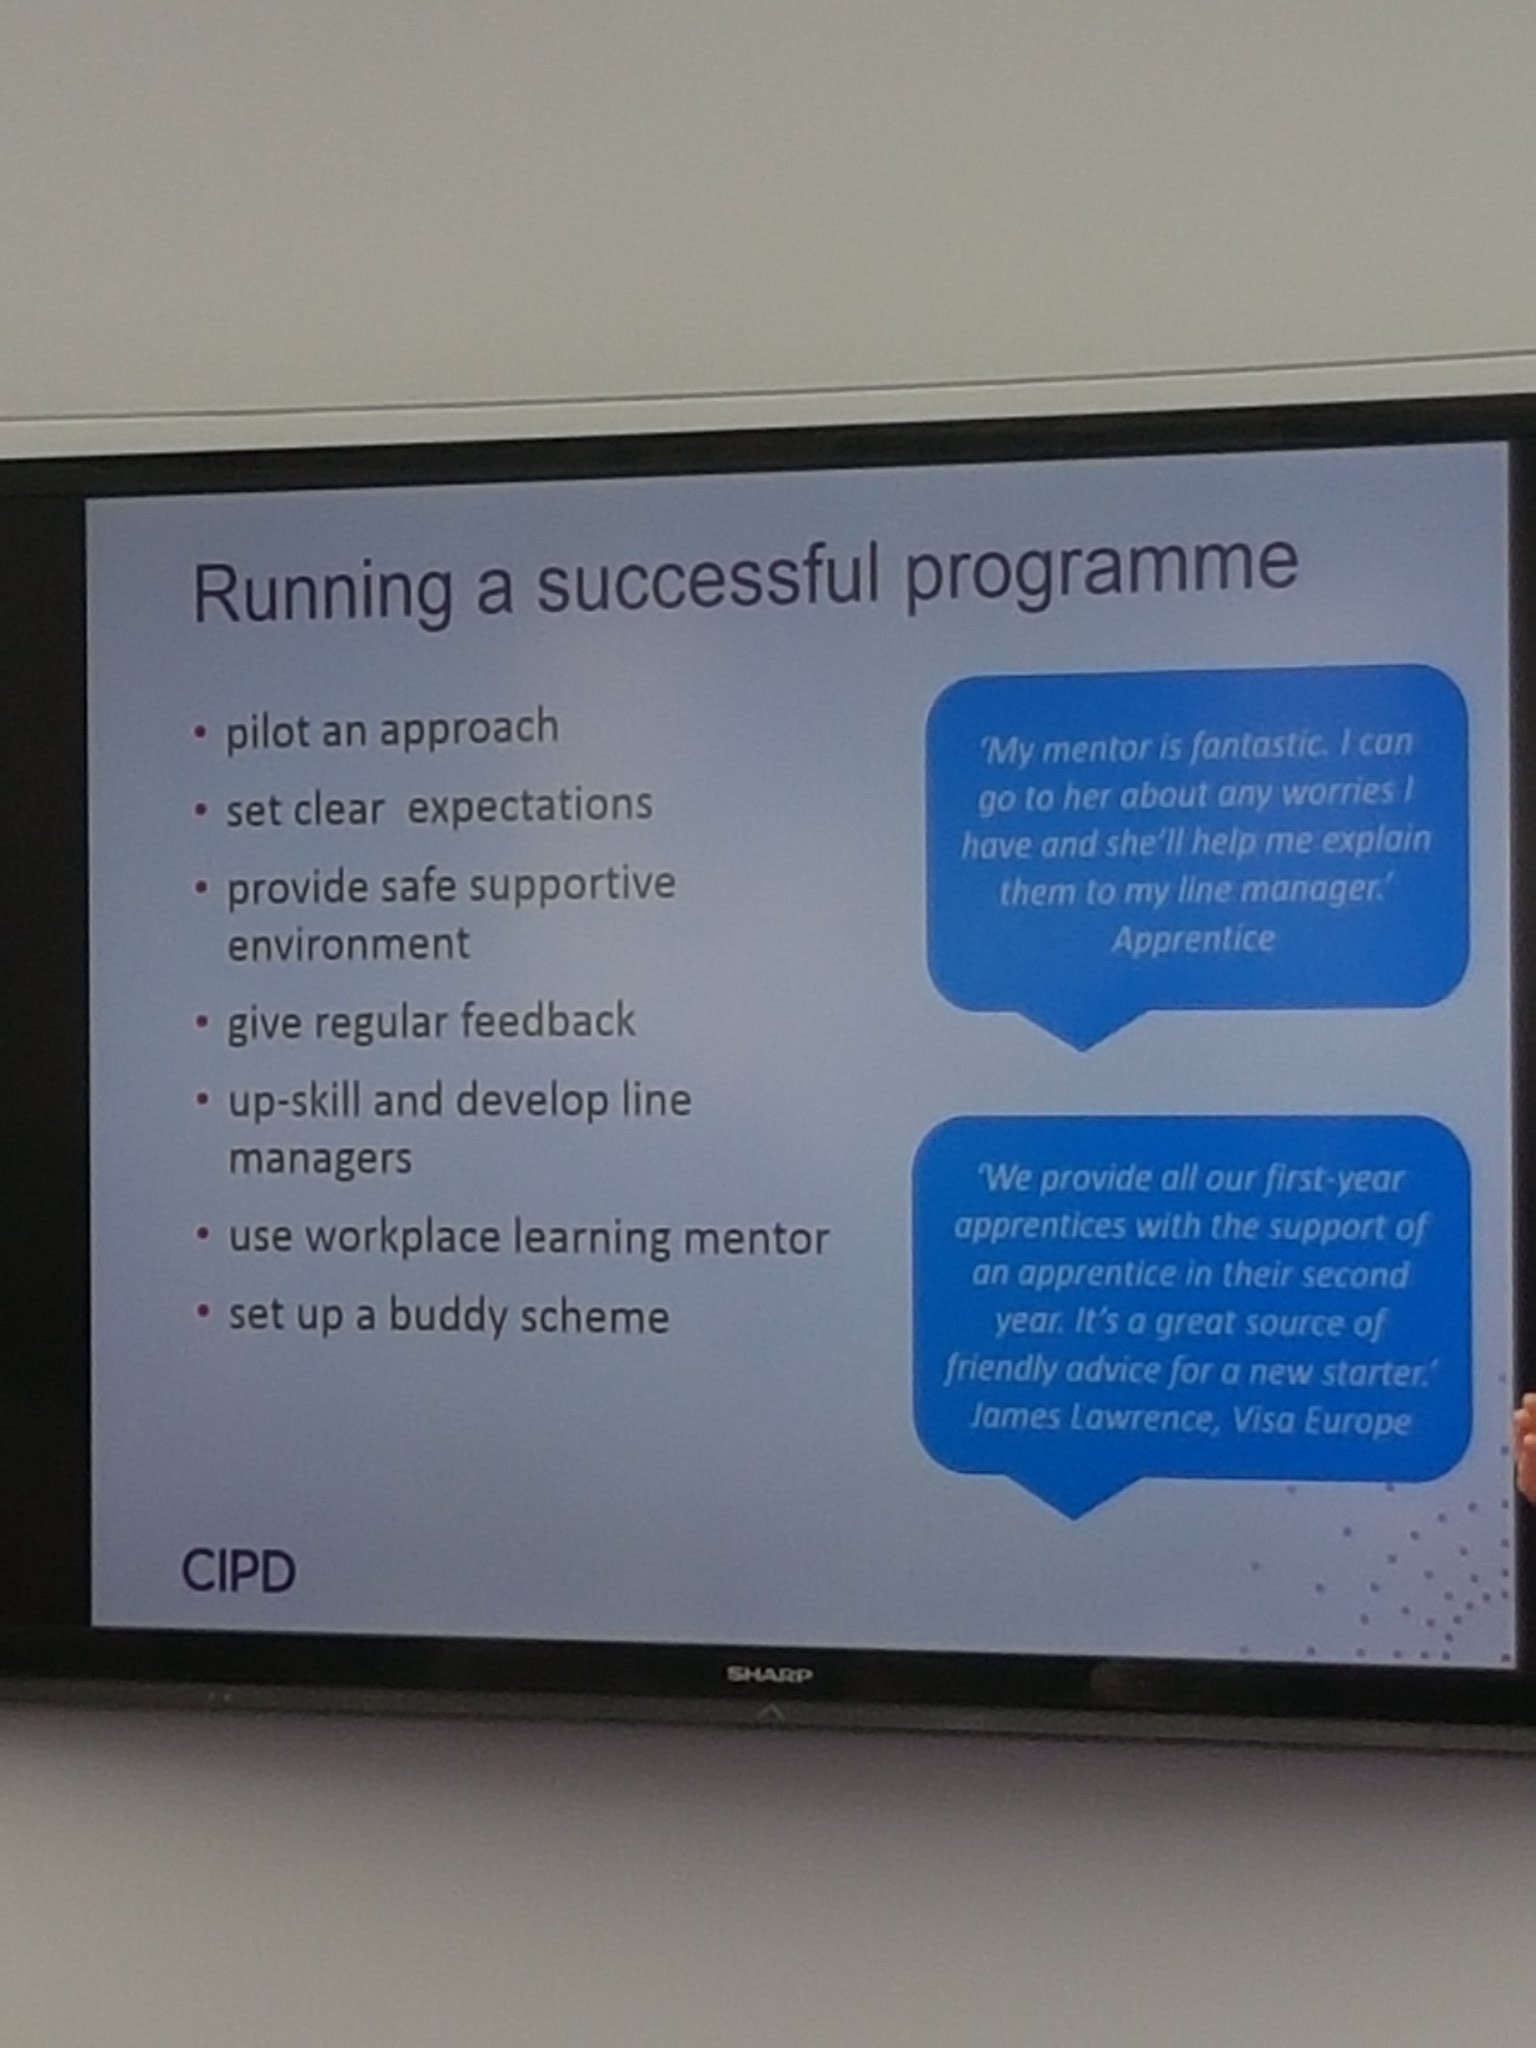 Running a successful #Apprenticeship programme. Great advice from @CIPD at #cipdldshow https://t.co/g6IF6vH2fE